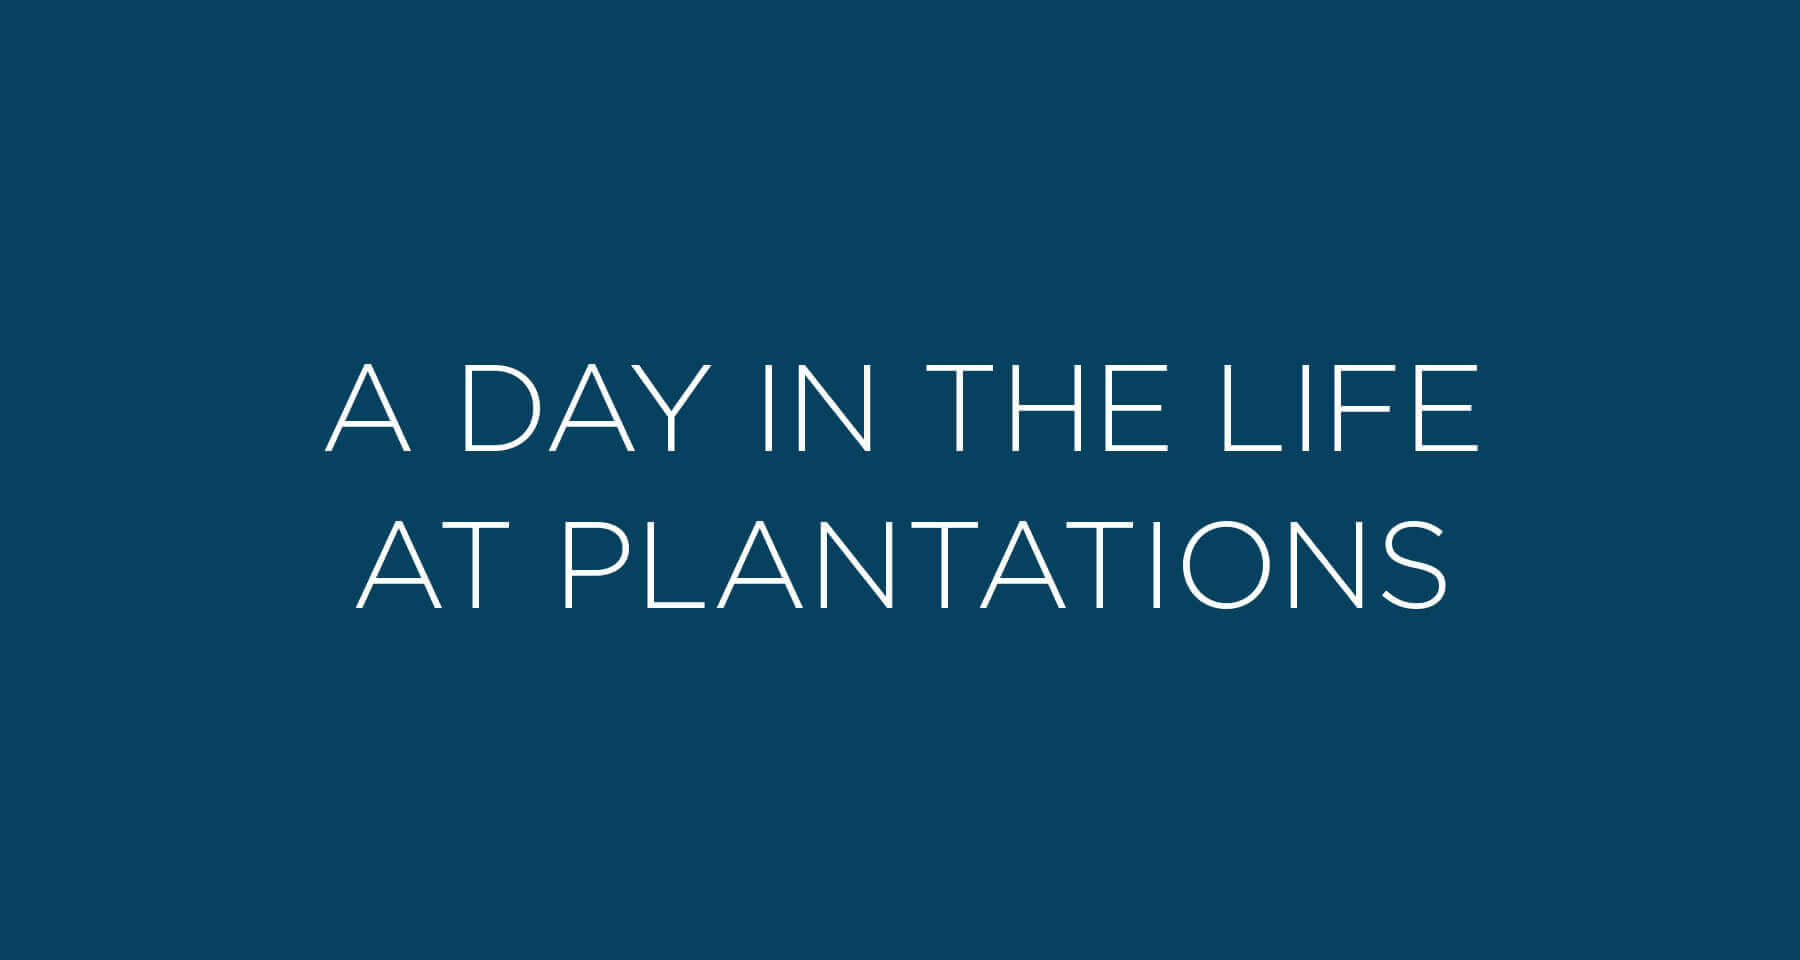 A day in the life at Plantations